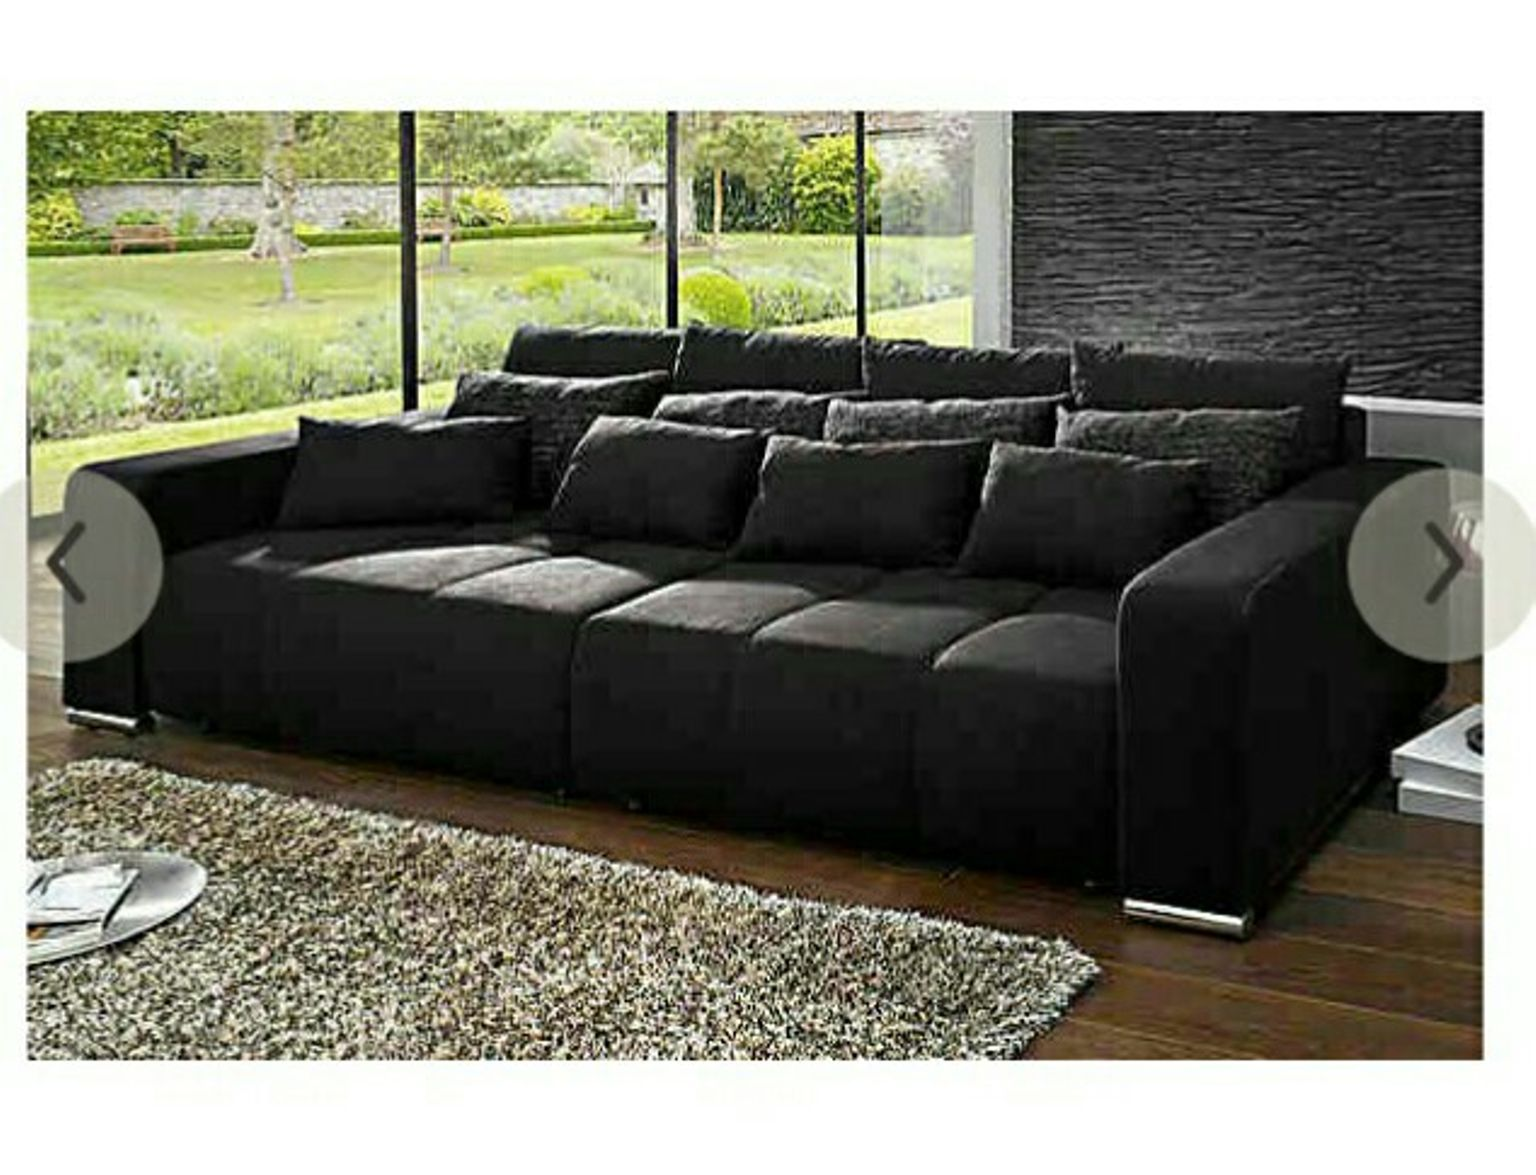 Couch Billig Billig Big Sofa Xxl Deutsche In 2019 Big Sofas Big Couch Sofa